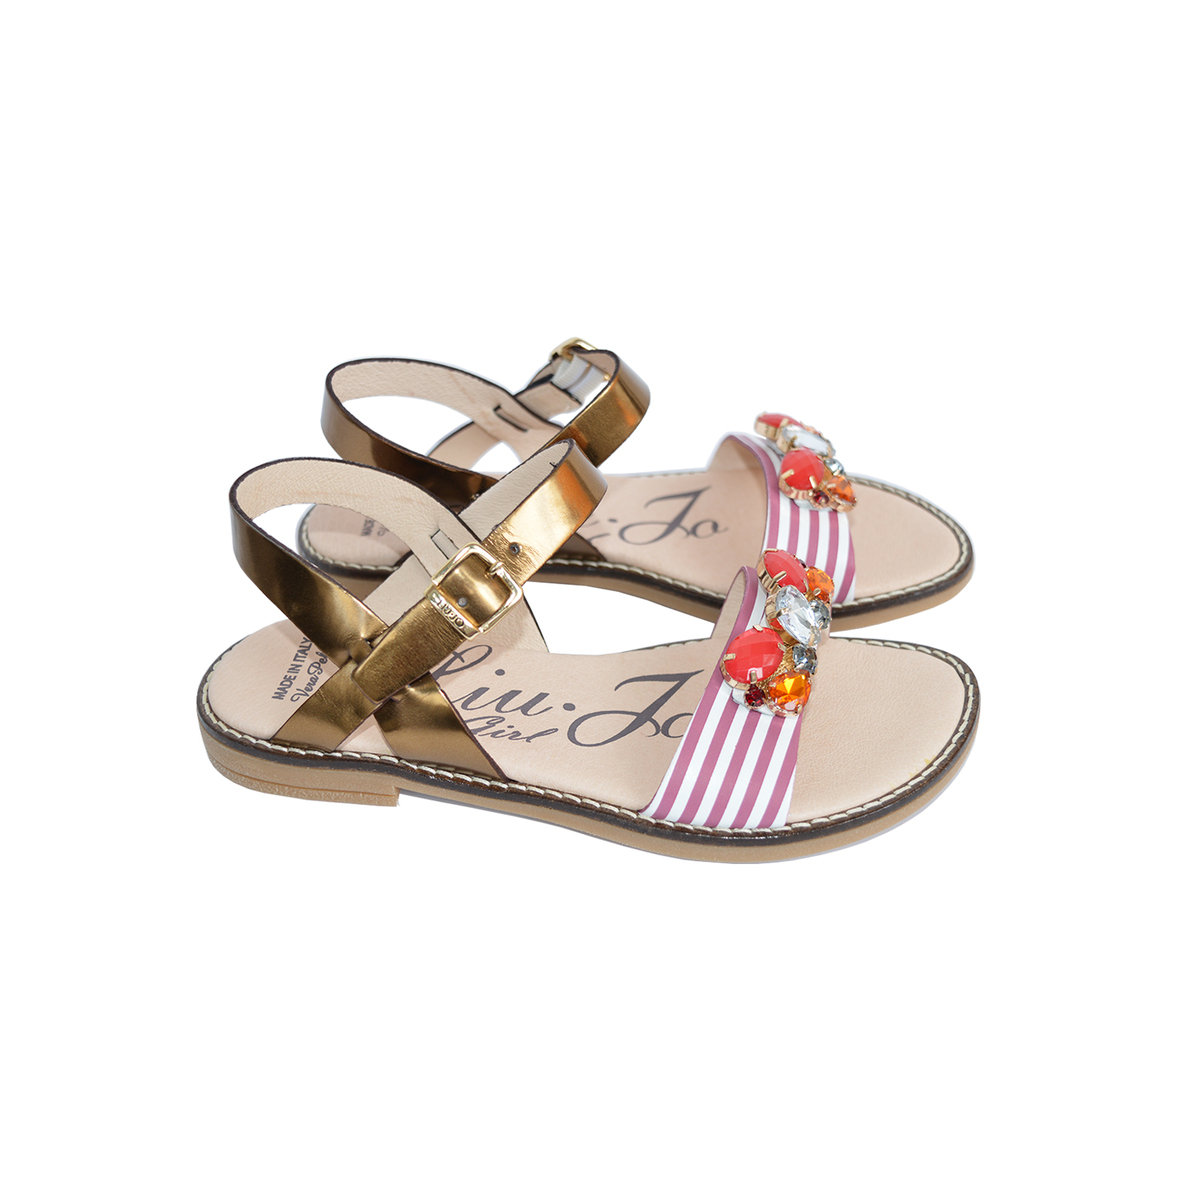 991303b1eecf Girls Leather Sandals With Gems Thumbnail